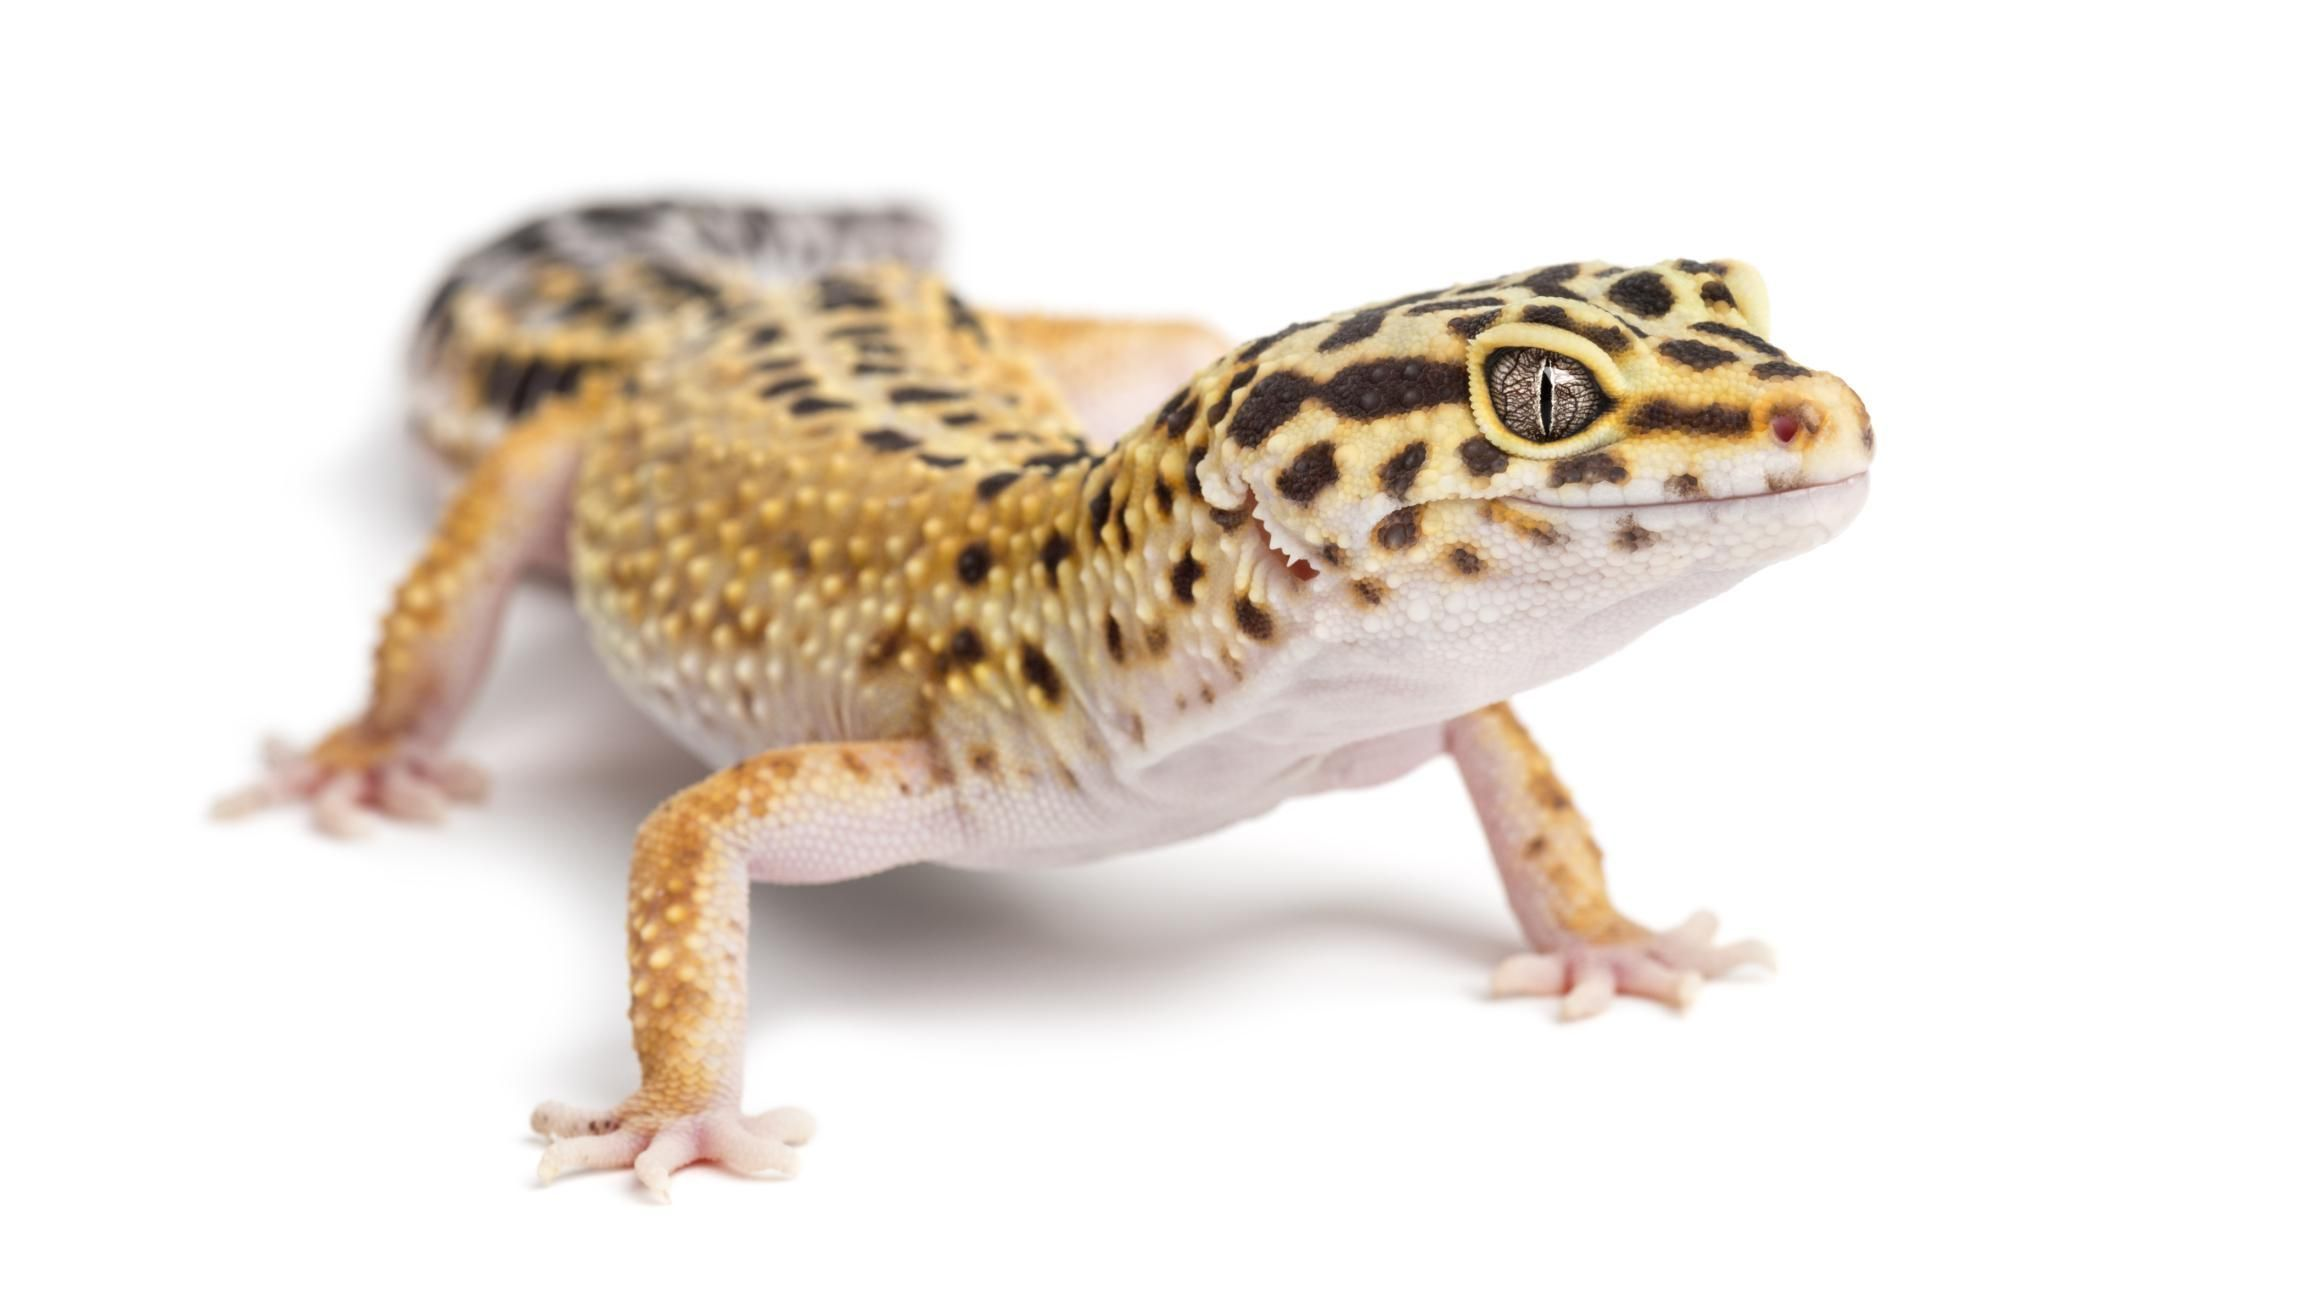 Leopard Geckos Make Great Pet Lizards For Both The Beginner And Seasoned Reptile Caretaker Learn How To Properly Leopard Gecko Pet Lizards